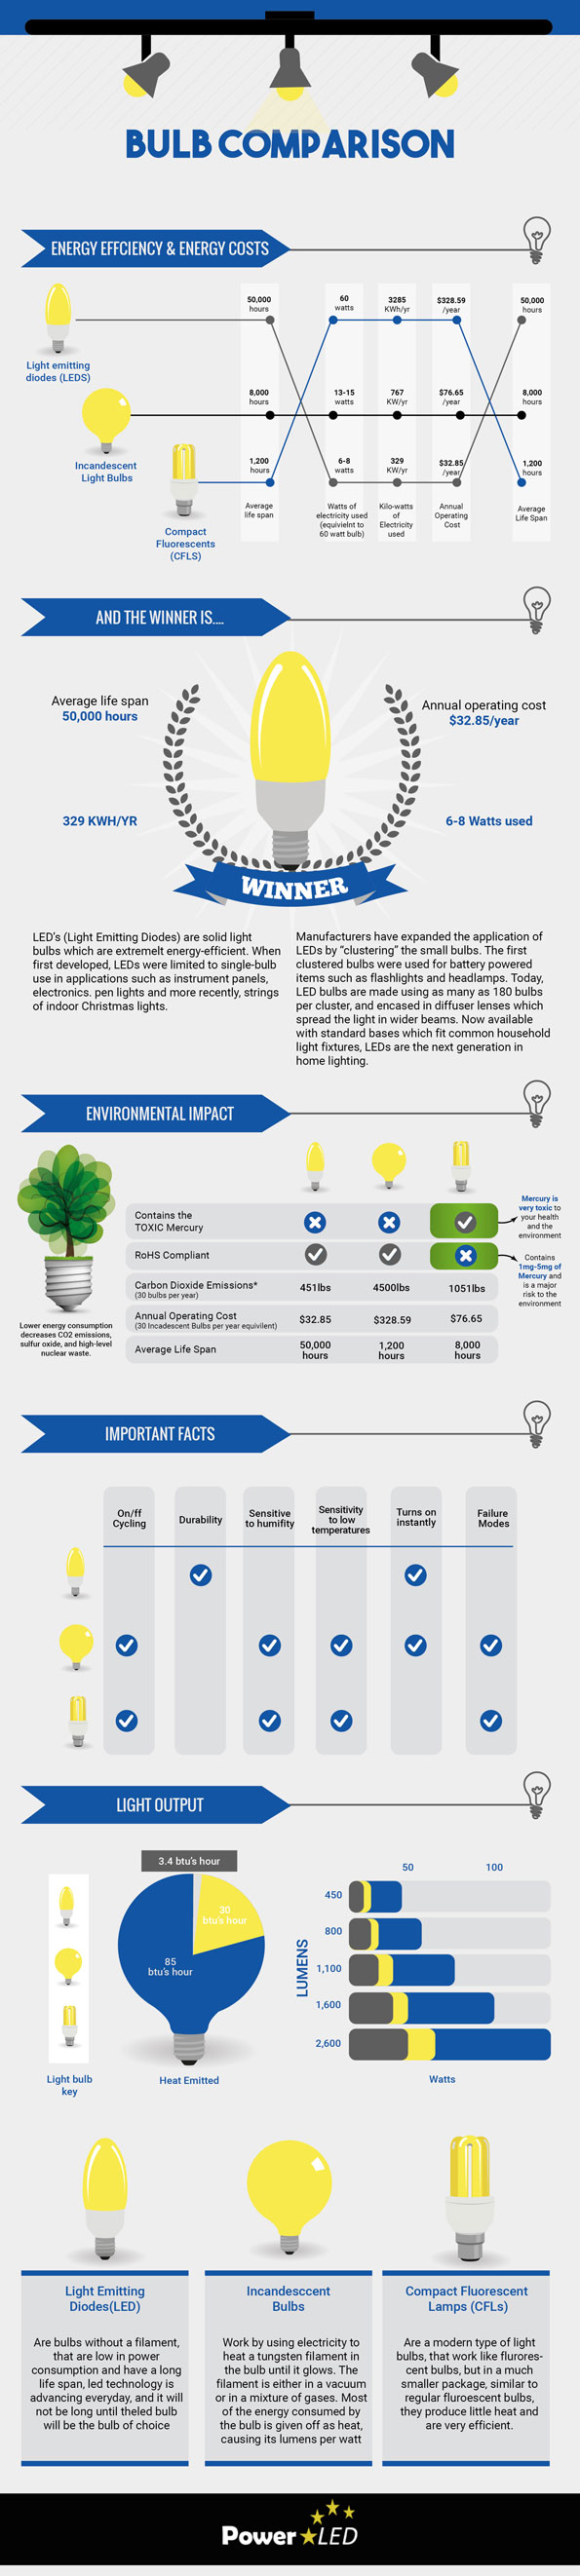 LED-Lights-Power-LED-Infographic.jpg